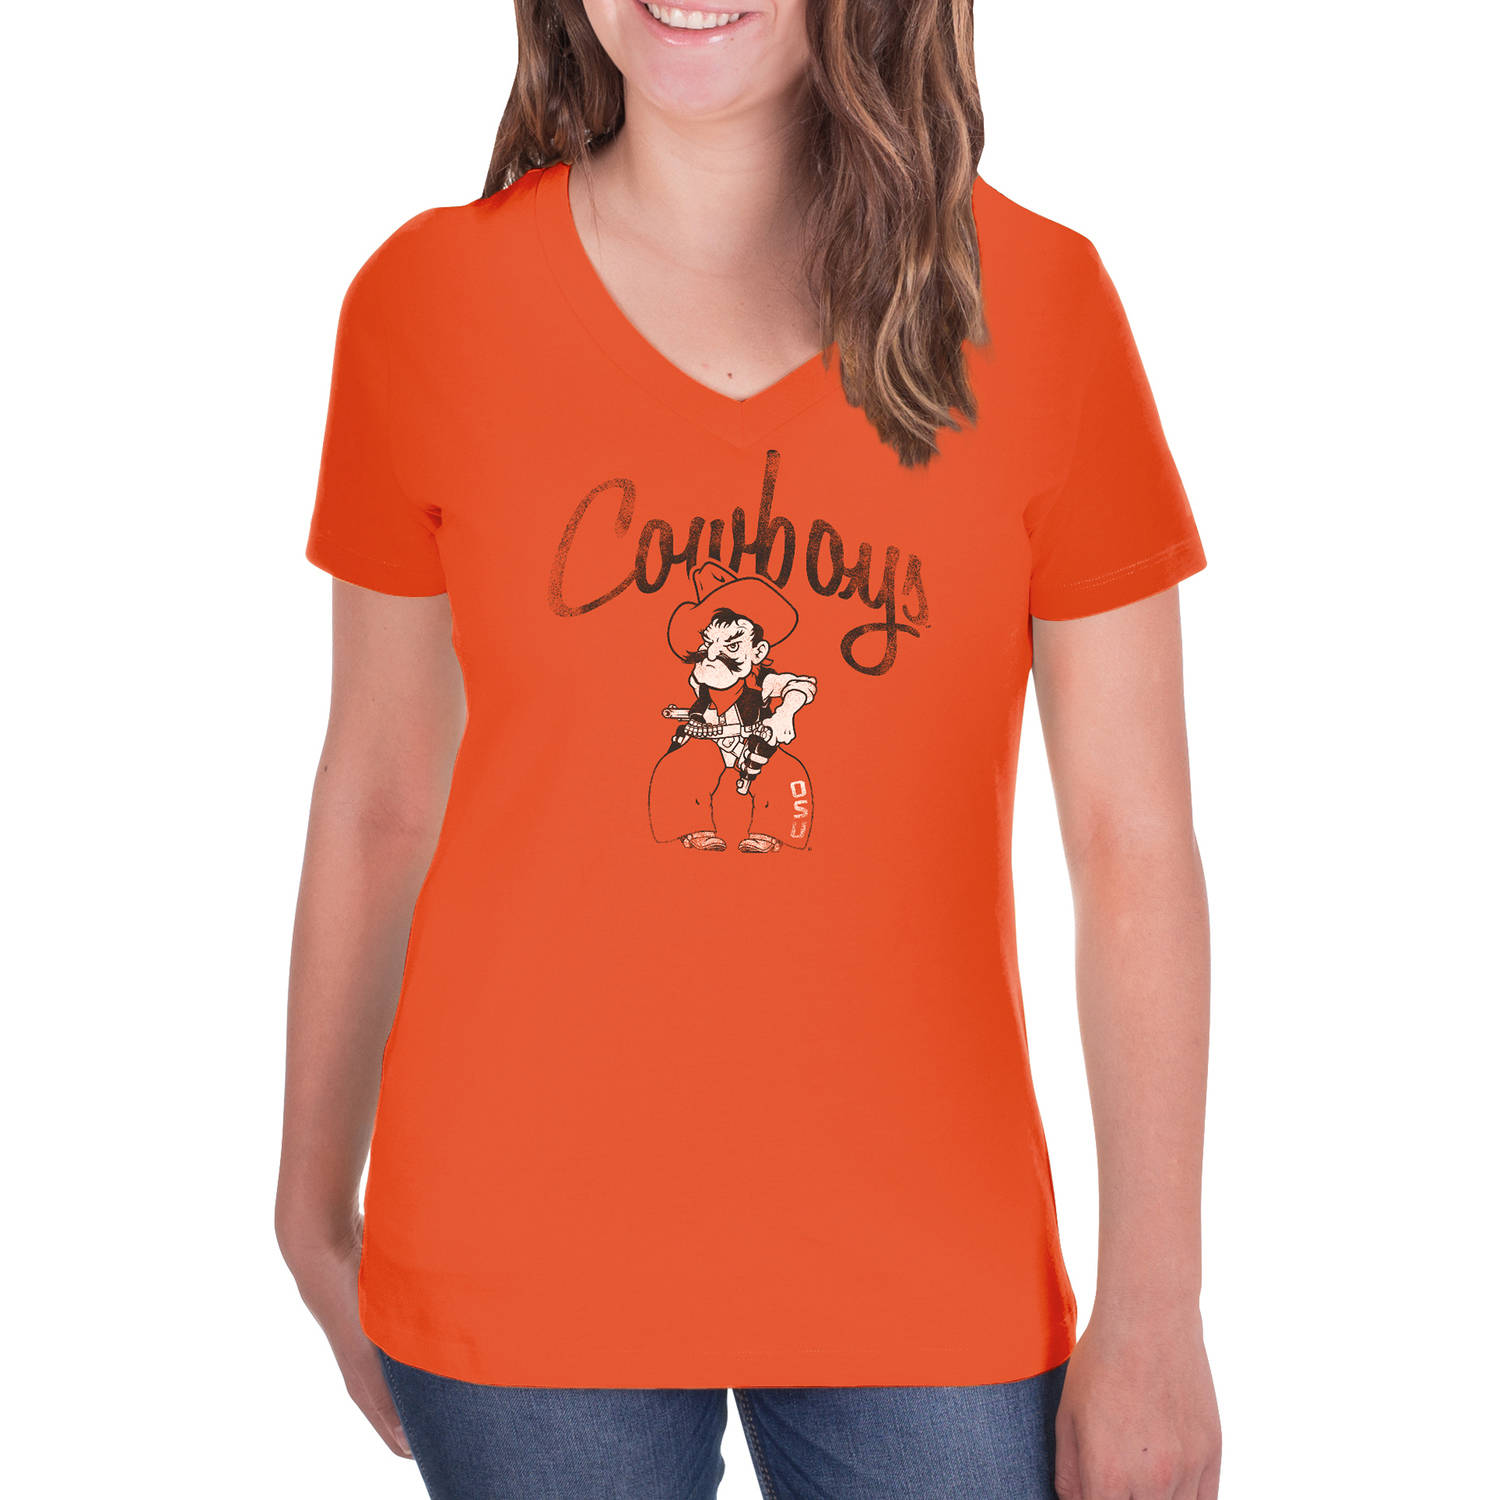 NCAA Oklahoma State Cowboys Women's V-Neck Tunic Cotton Tee Shirt